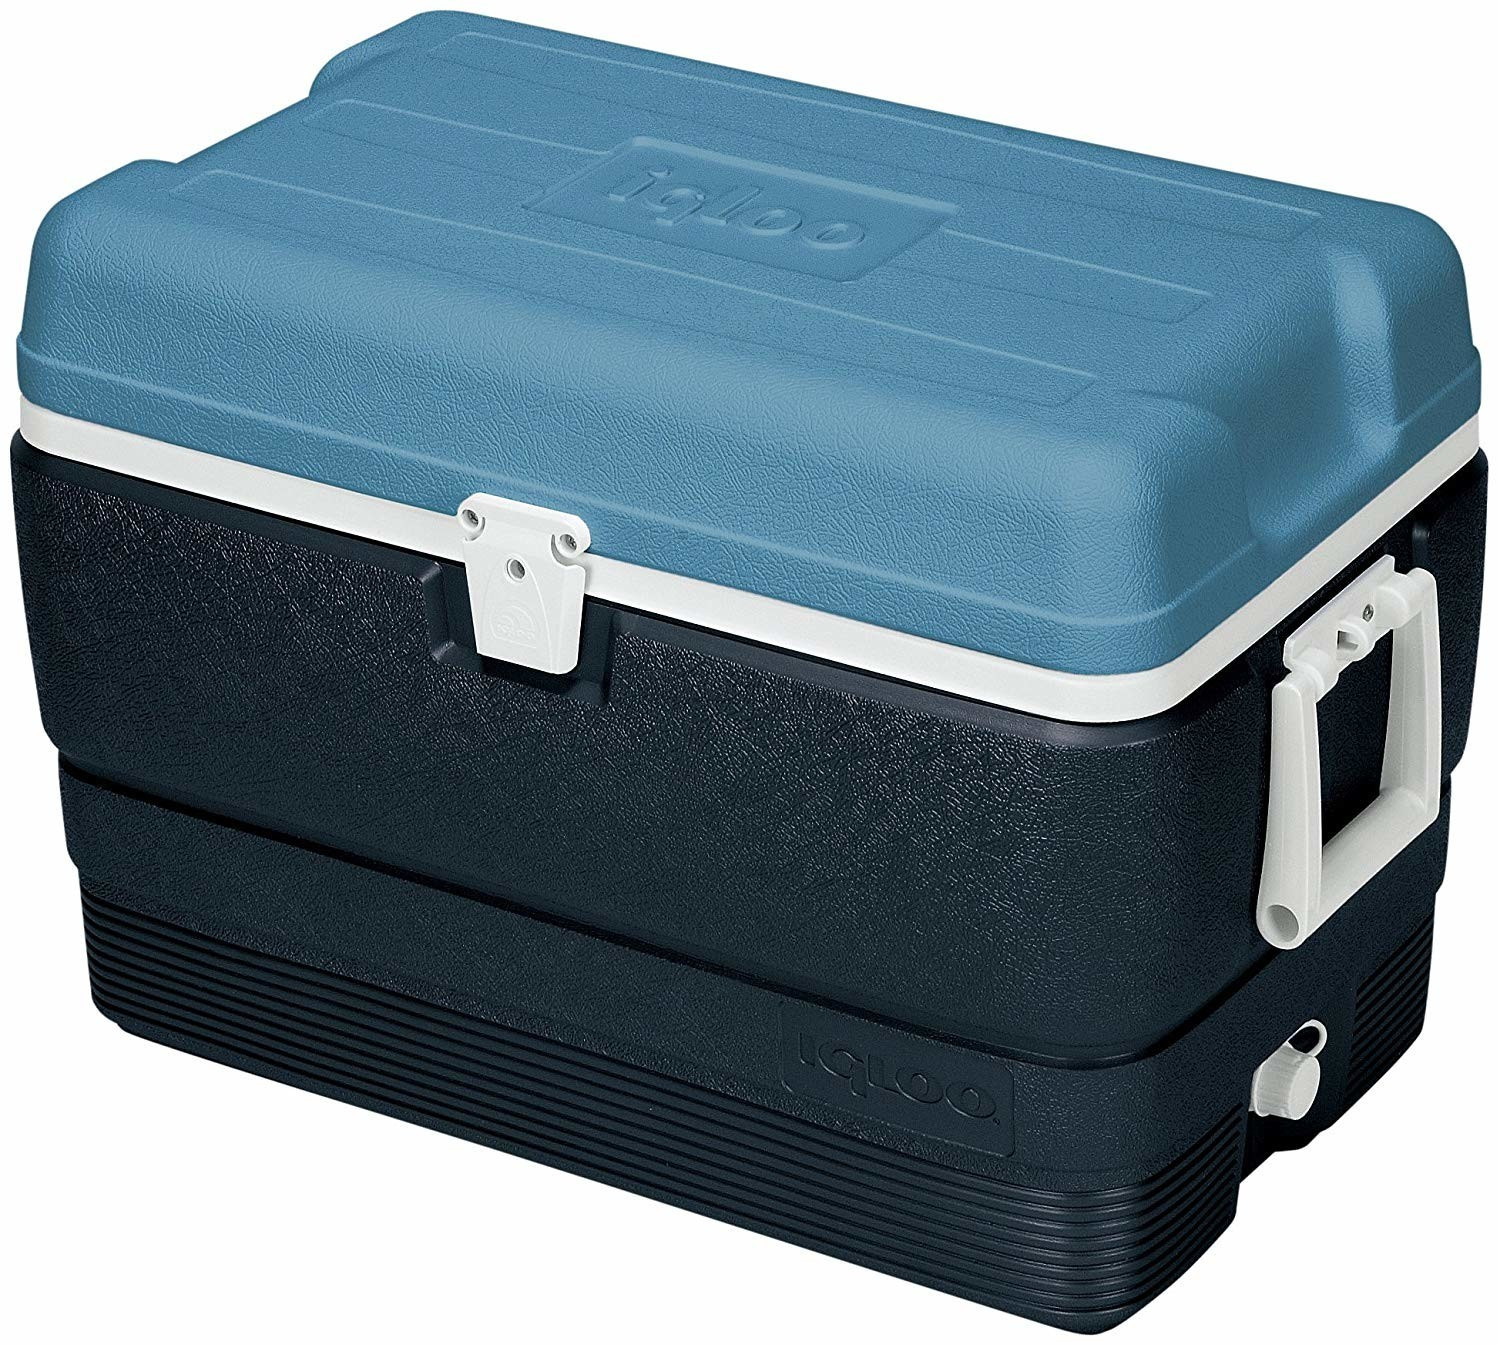 Image of Igloo MaxCold 47 Litre Cool Box